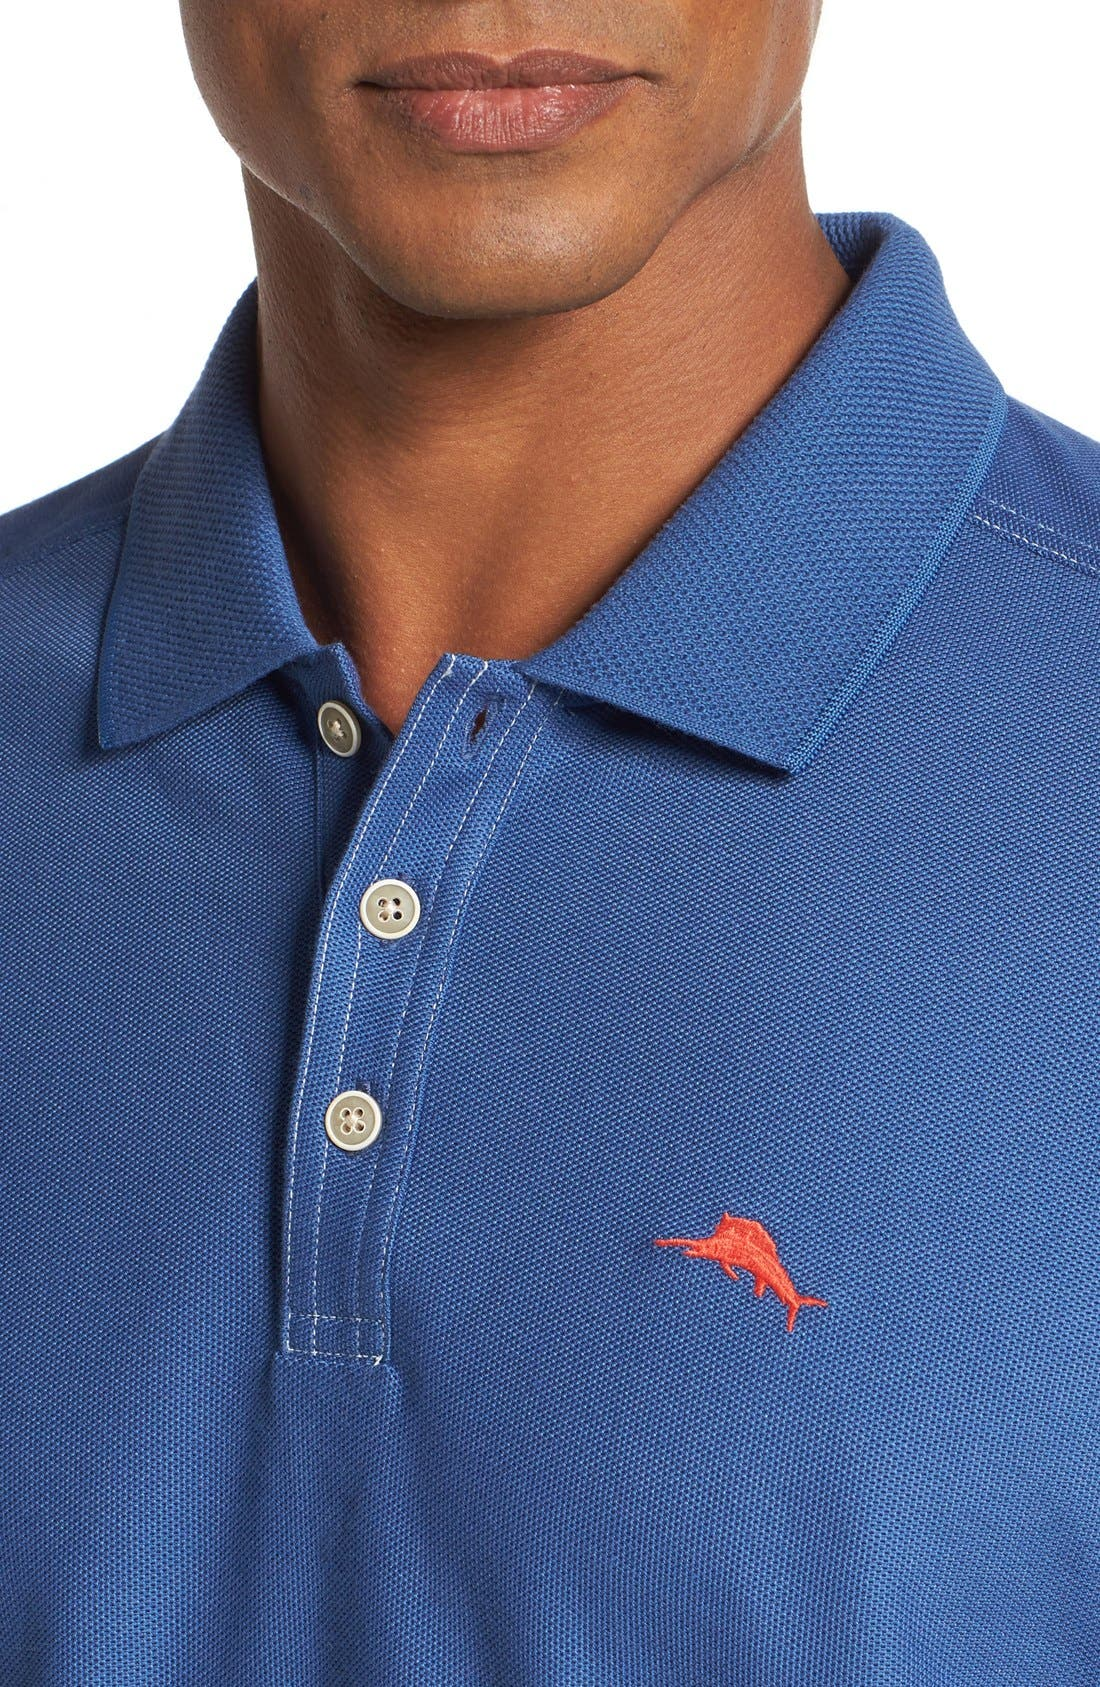 'The Emfielder' Original Fit Piqué Polo,                             Alternate thumbnail 240, color,